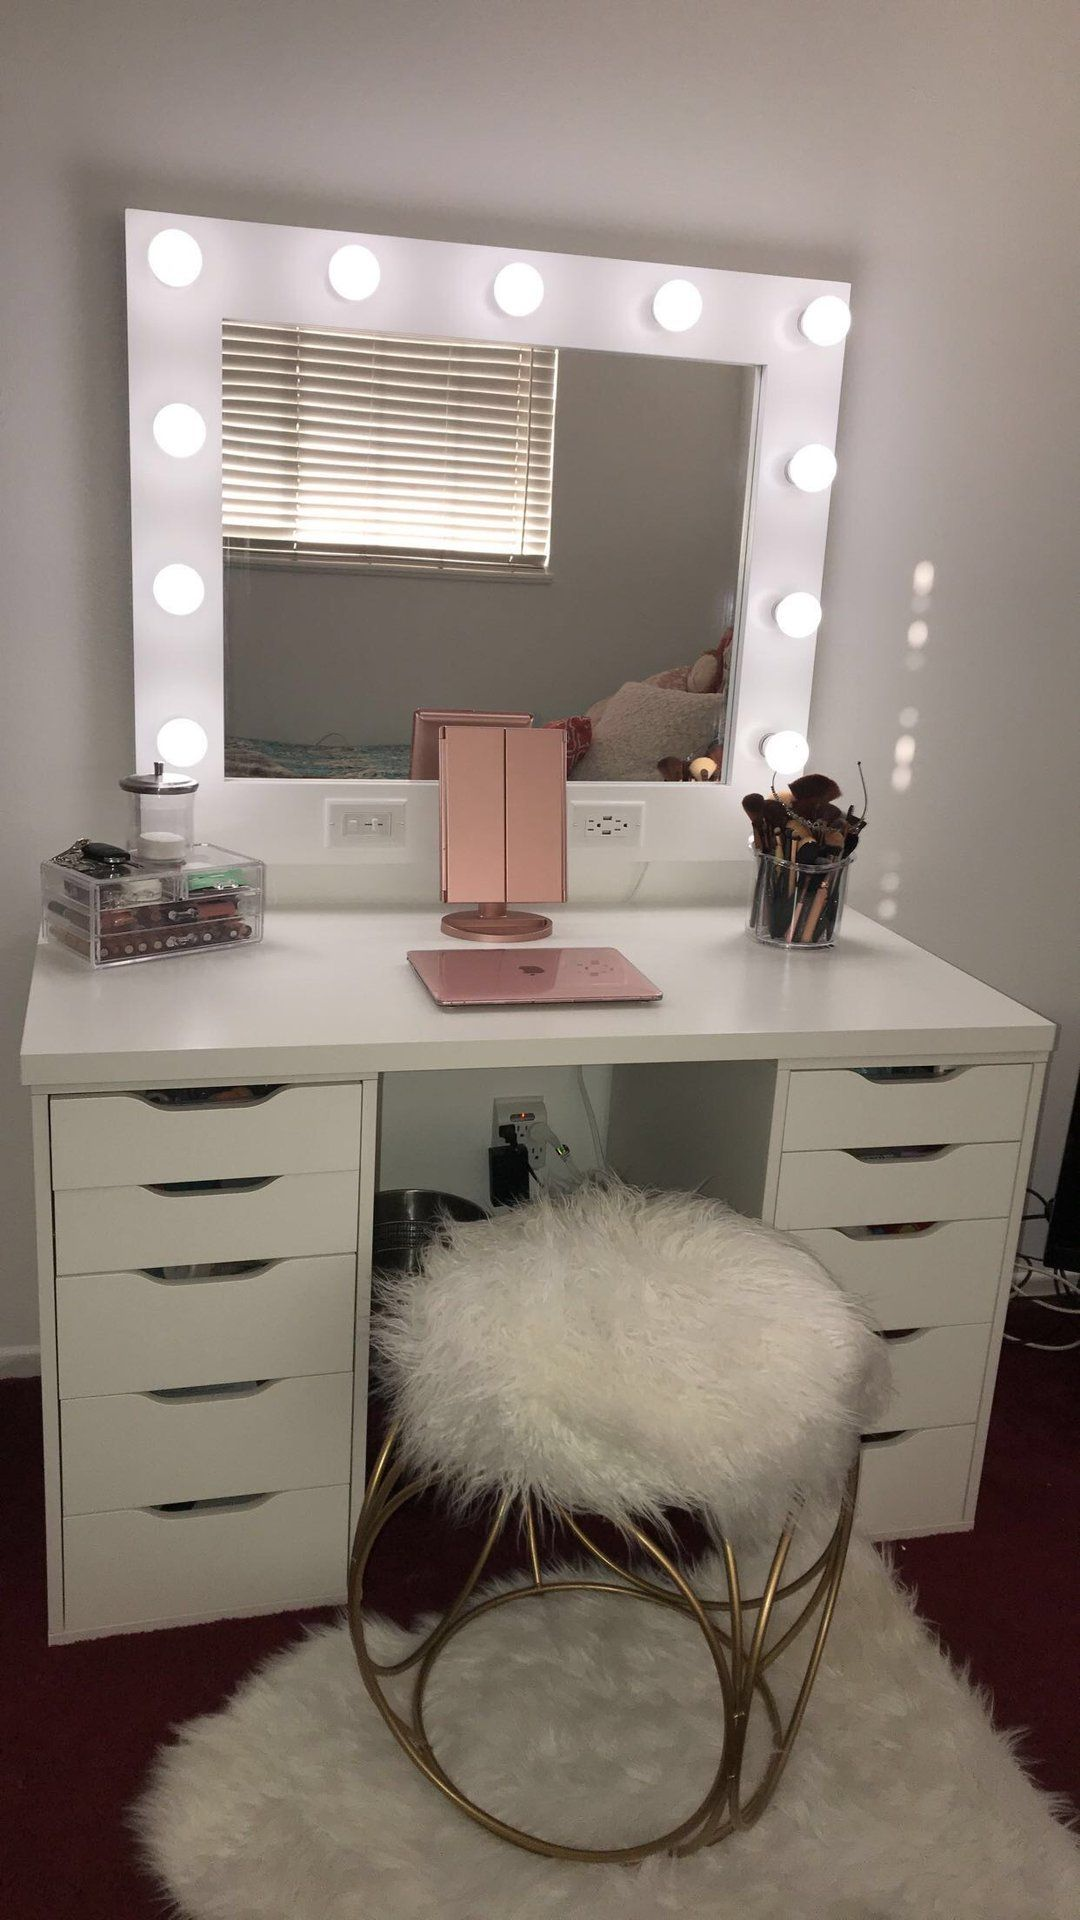 Small Dream Vanity Horizontal Stylish Bedroom Makeup Room Decor Room Ideas Bedroom